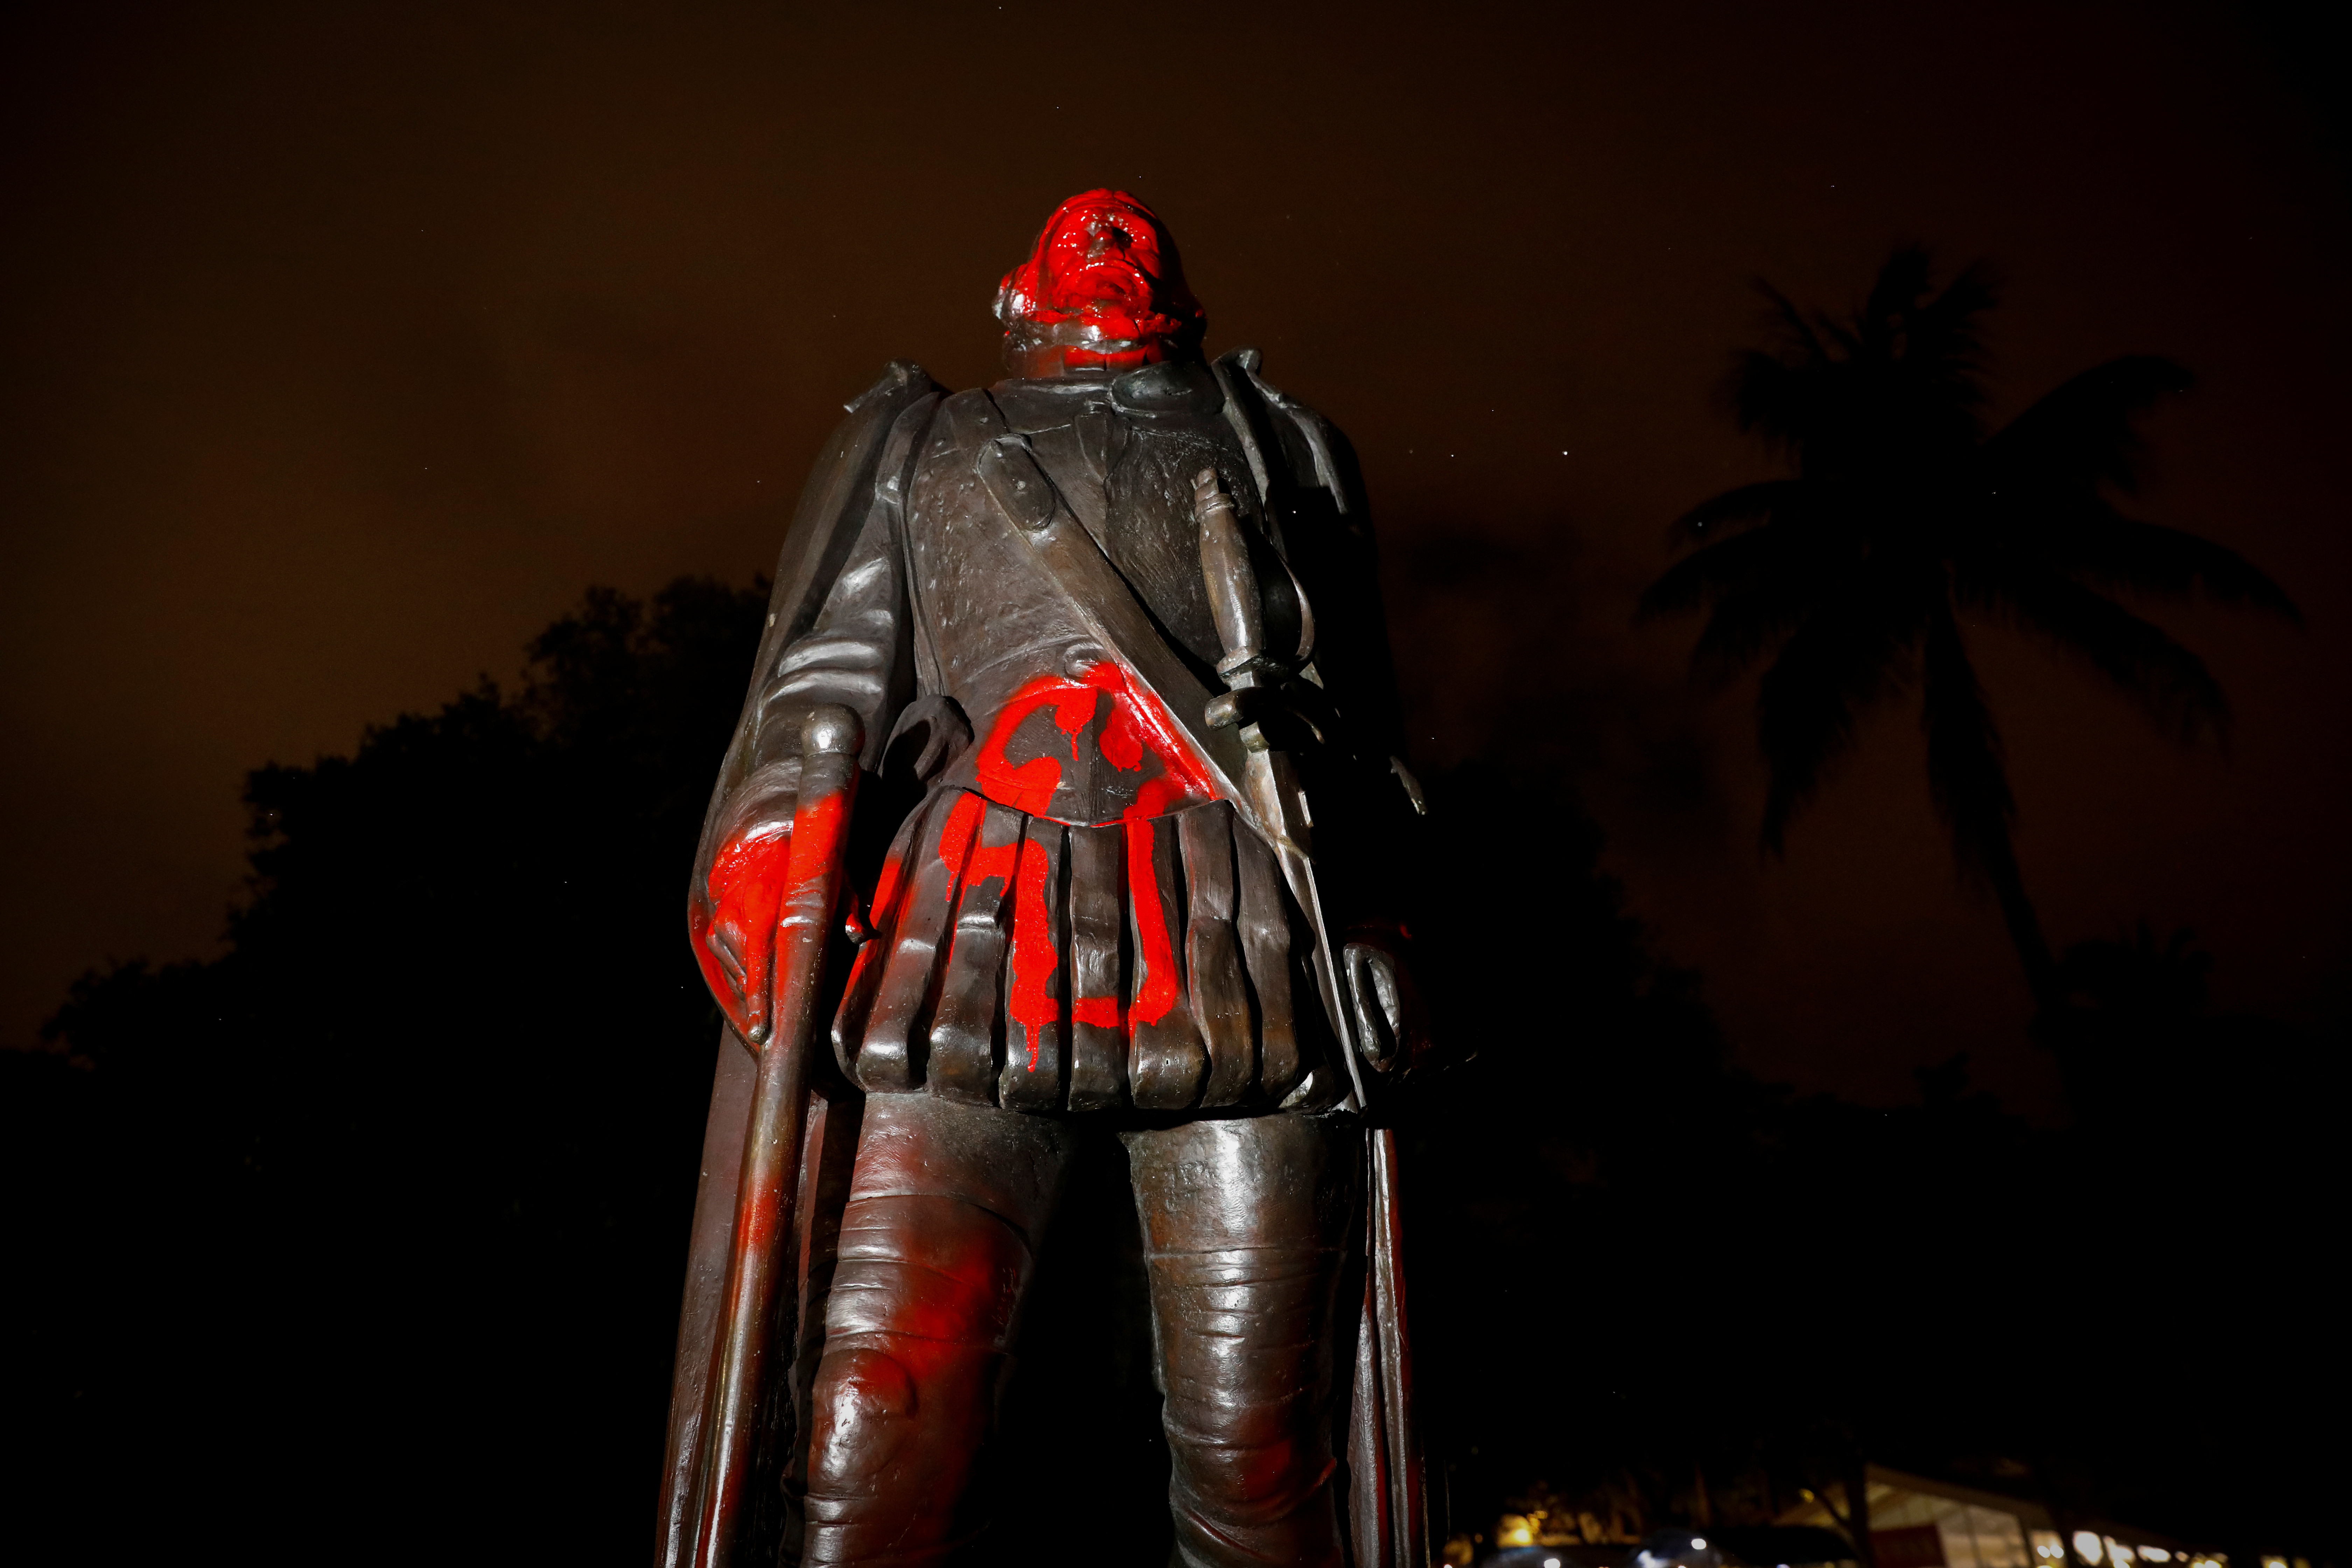 A vandalized statue of Christopher Columbus is seen at the Bayside Marketplace, after a protest against racial inequality in the aftermath of the death in Minneapolis police custody of George Floyd, in Downtown Miami, Florida, U.S., June 10, 2020. REUTERS/Marco Bello - RC2S6H948OKT